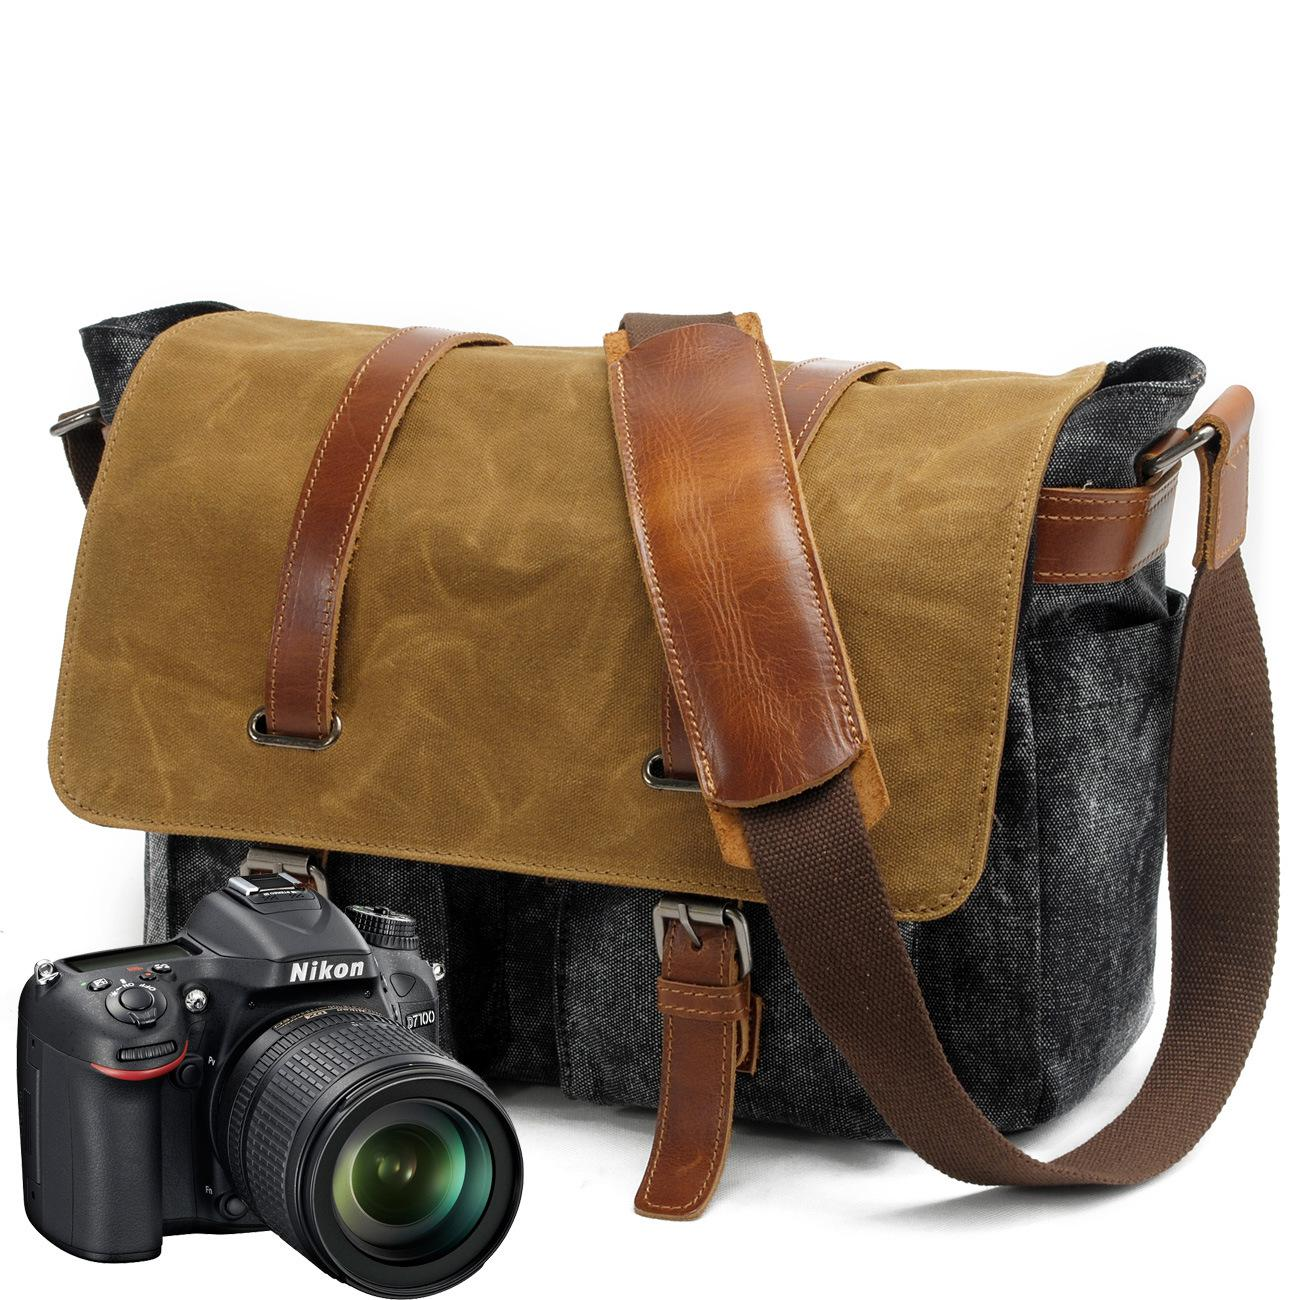 2016 Canvas Leather Crossbody Satchel Bag Men Military Army Grey Vintage Messenger Bags Large Shoulder Bag Casual Travel Bags augur canvas leather men messenger bags military vintage tote briefcase satchel crossbody bags women school travel shoulder bags